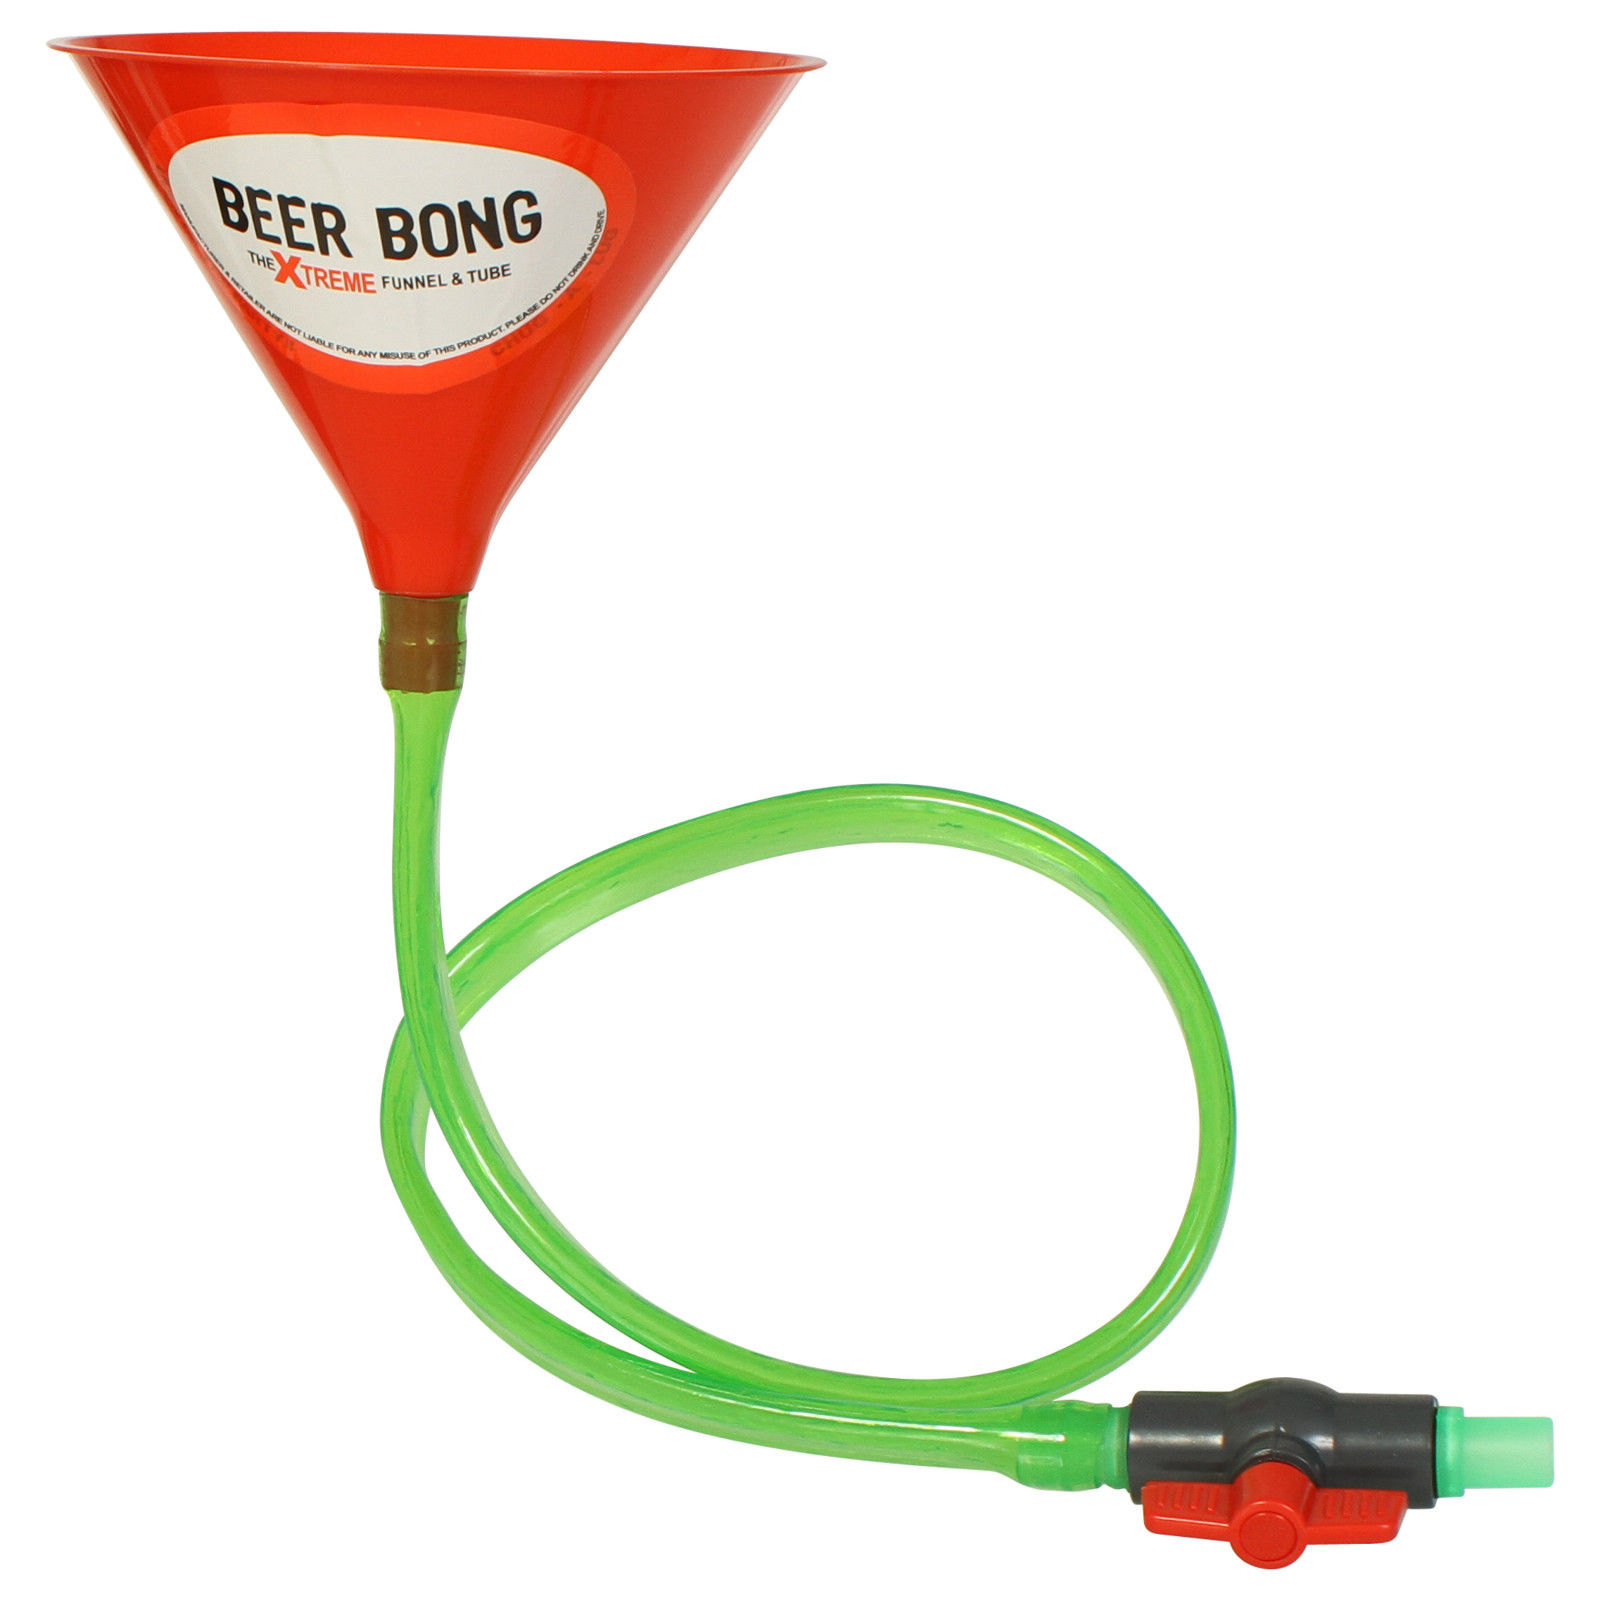 The Xtreme Drinking Funnel Amp Tube Beer Bong With Stop